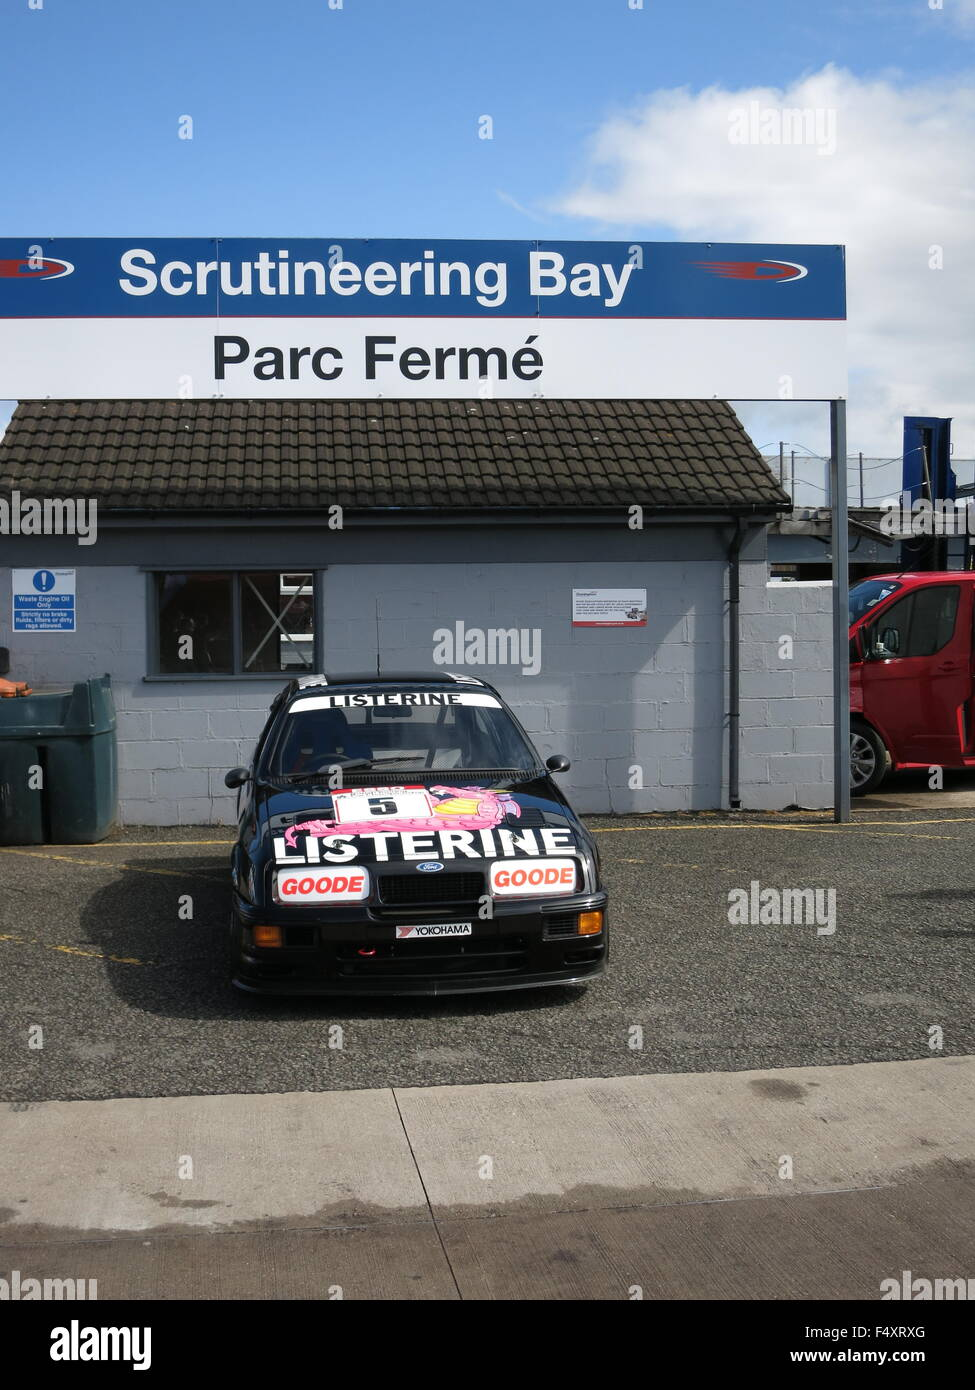 Ford Sierra RS500 RS 500 Cosworth Touring car - in scrutineering bay at donnington park race curcuit mk1 1st generation - Stock Image